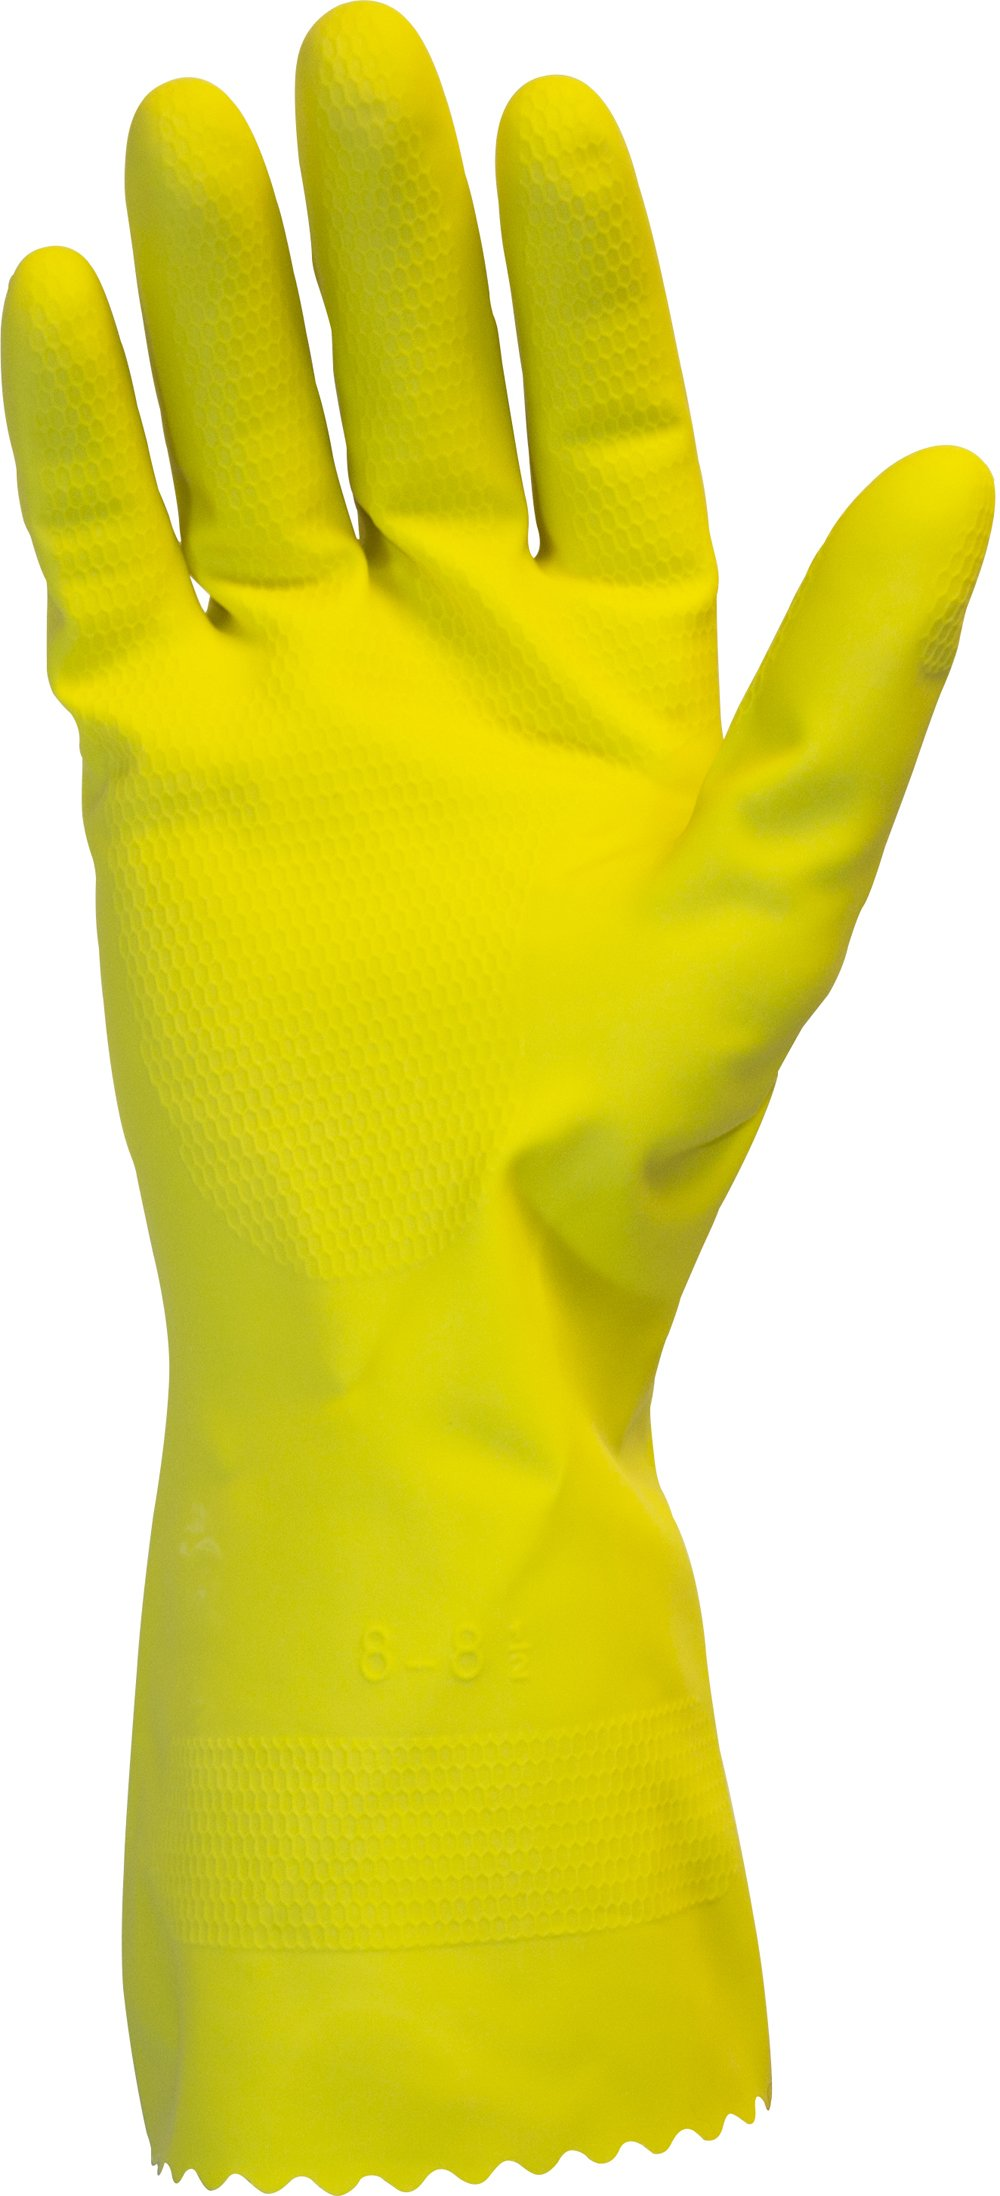 Heavy Duty Rubber Gloves - 18 Mil Yellow Latex, Flock Lined, Household Cleaning, Dishwashing, Strong, Work, Medical, Food Safe, Wholesale, 12 Pair Individually Bagged (Case of 120)